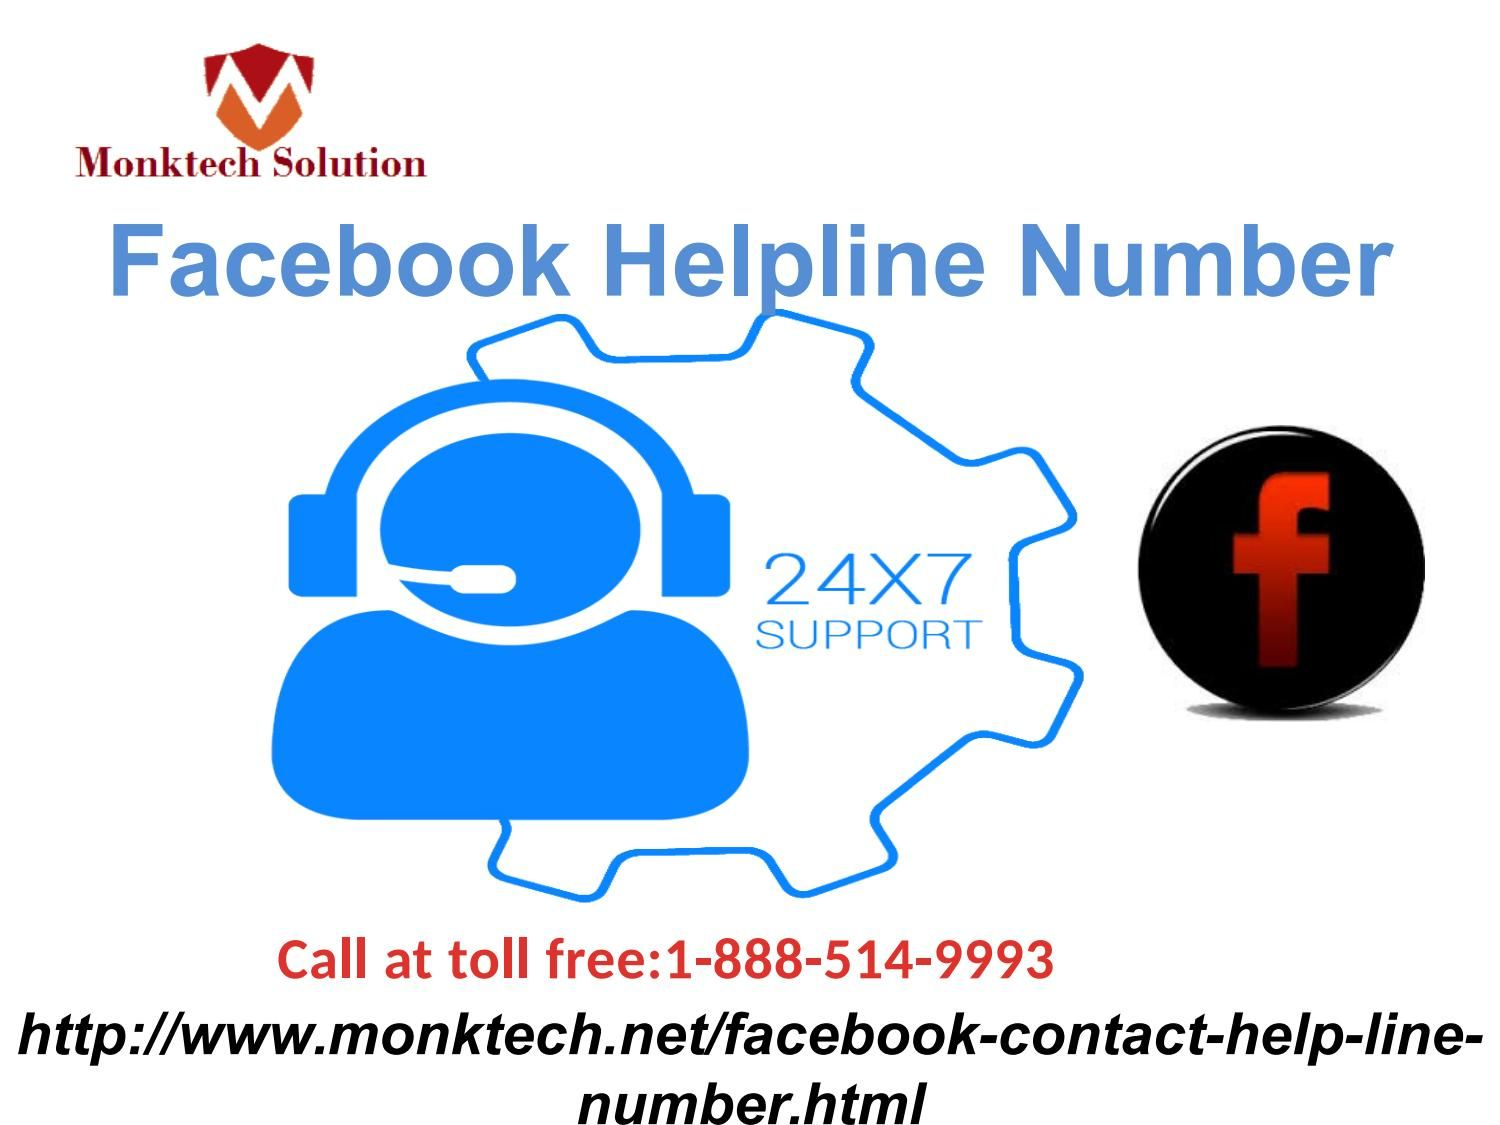 why facebook helpline is so necessary? call tollfree 1-888-514-9993